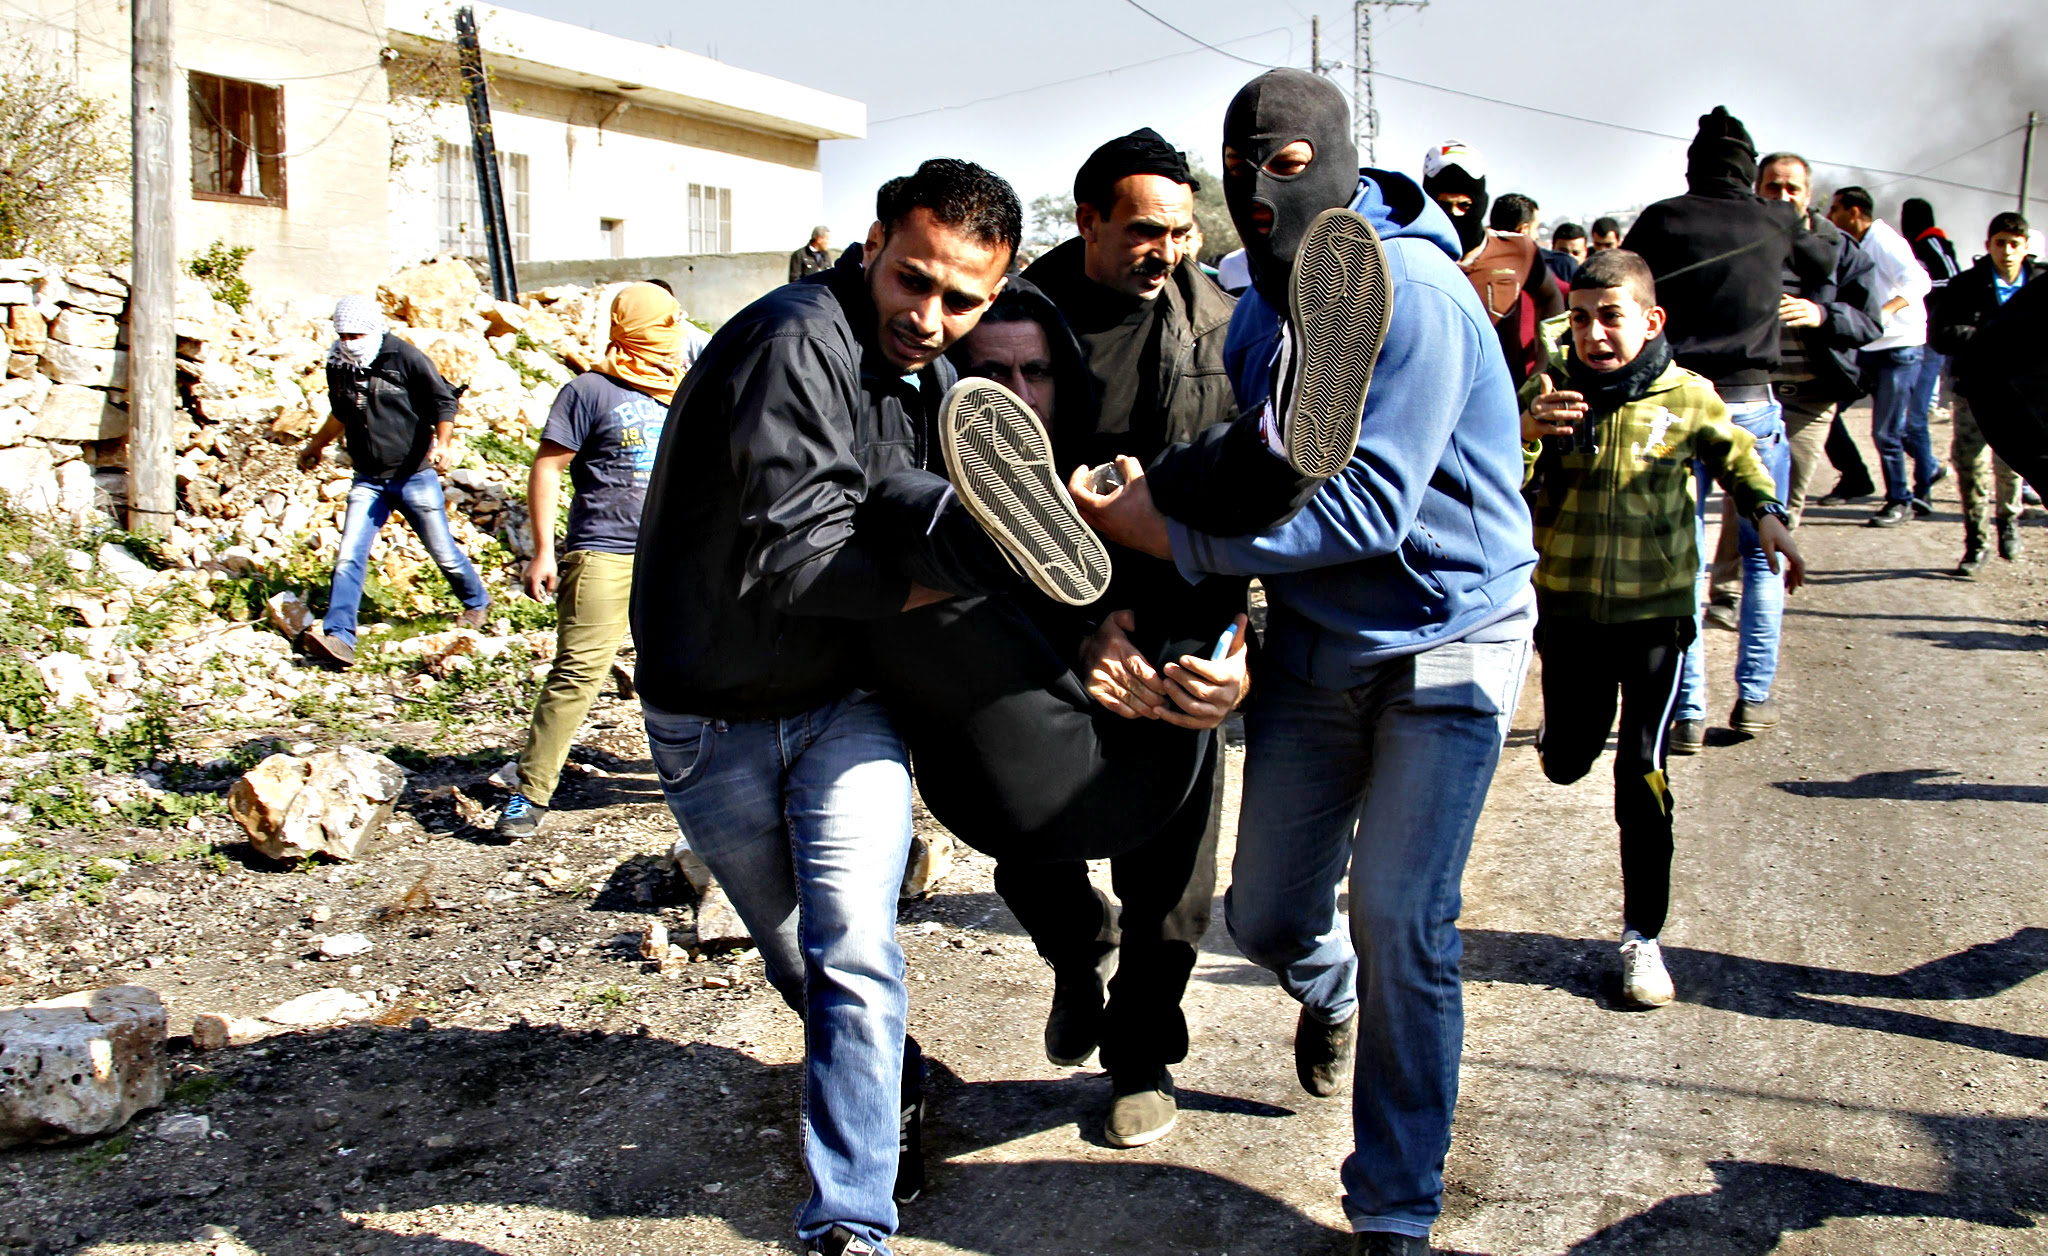 Palestinian protesters carry an injured comrade during clashes with Israeli soldiers that followed a protest against the Israeli settlements in Qadomem, in the Kofr Qadom village near the West Bank city of Nablus, 11 December 2015. According to local sources at least five Palestinians were injured during the clashes.